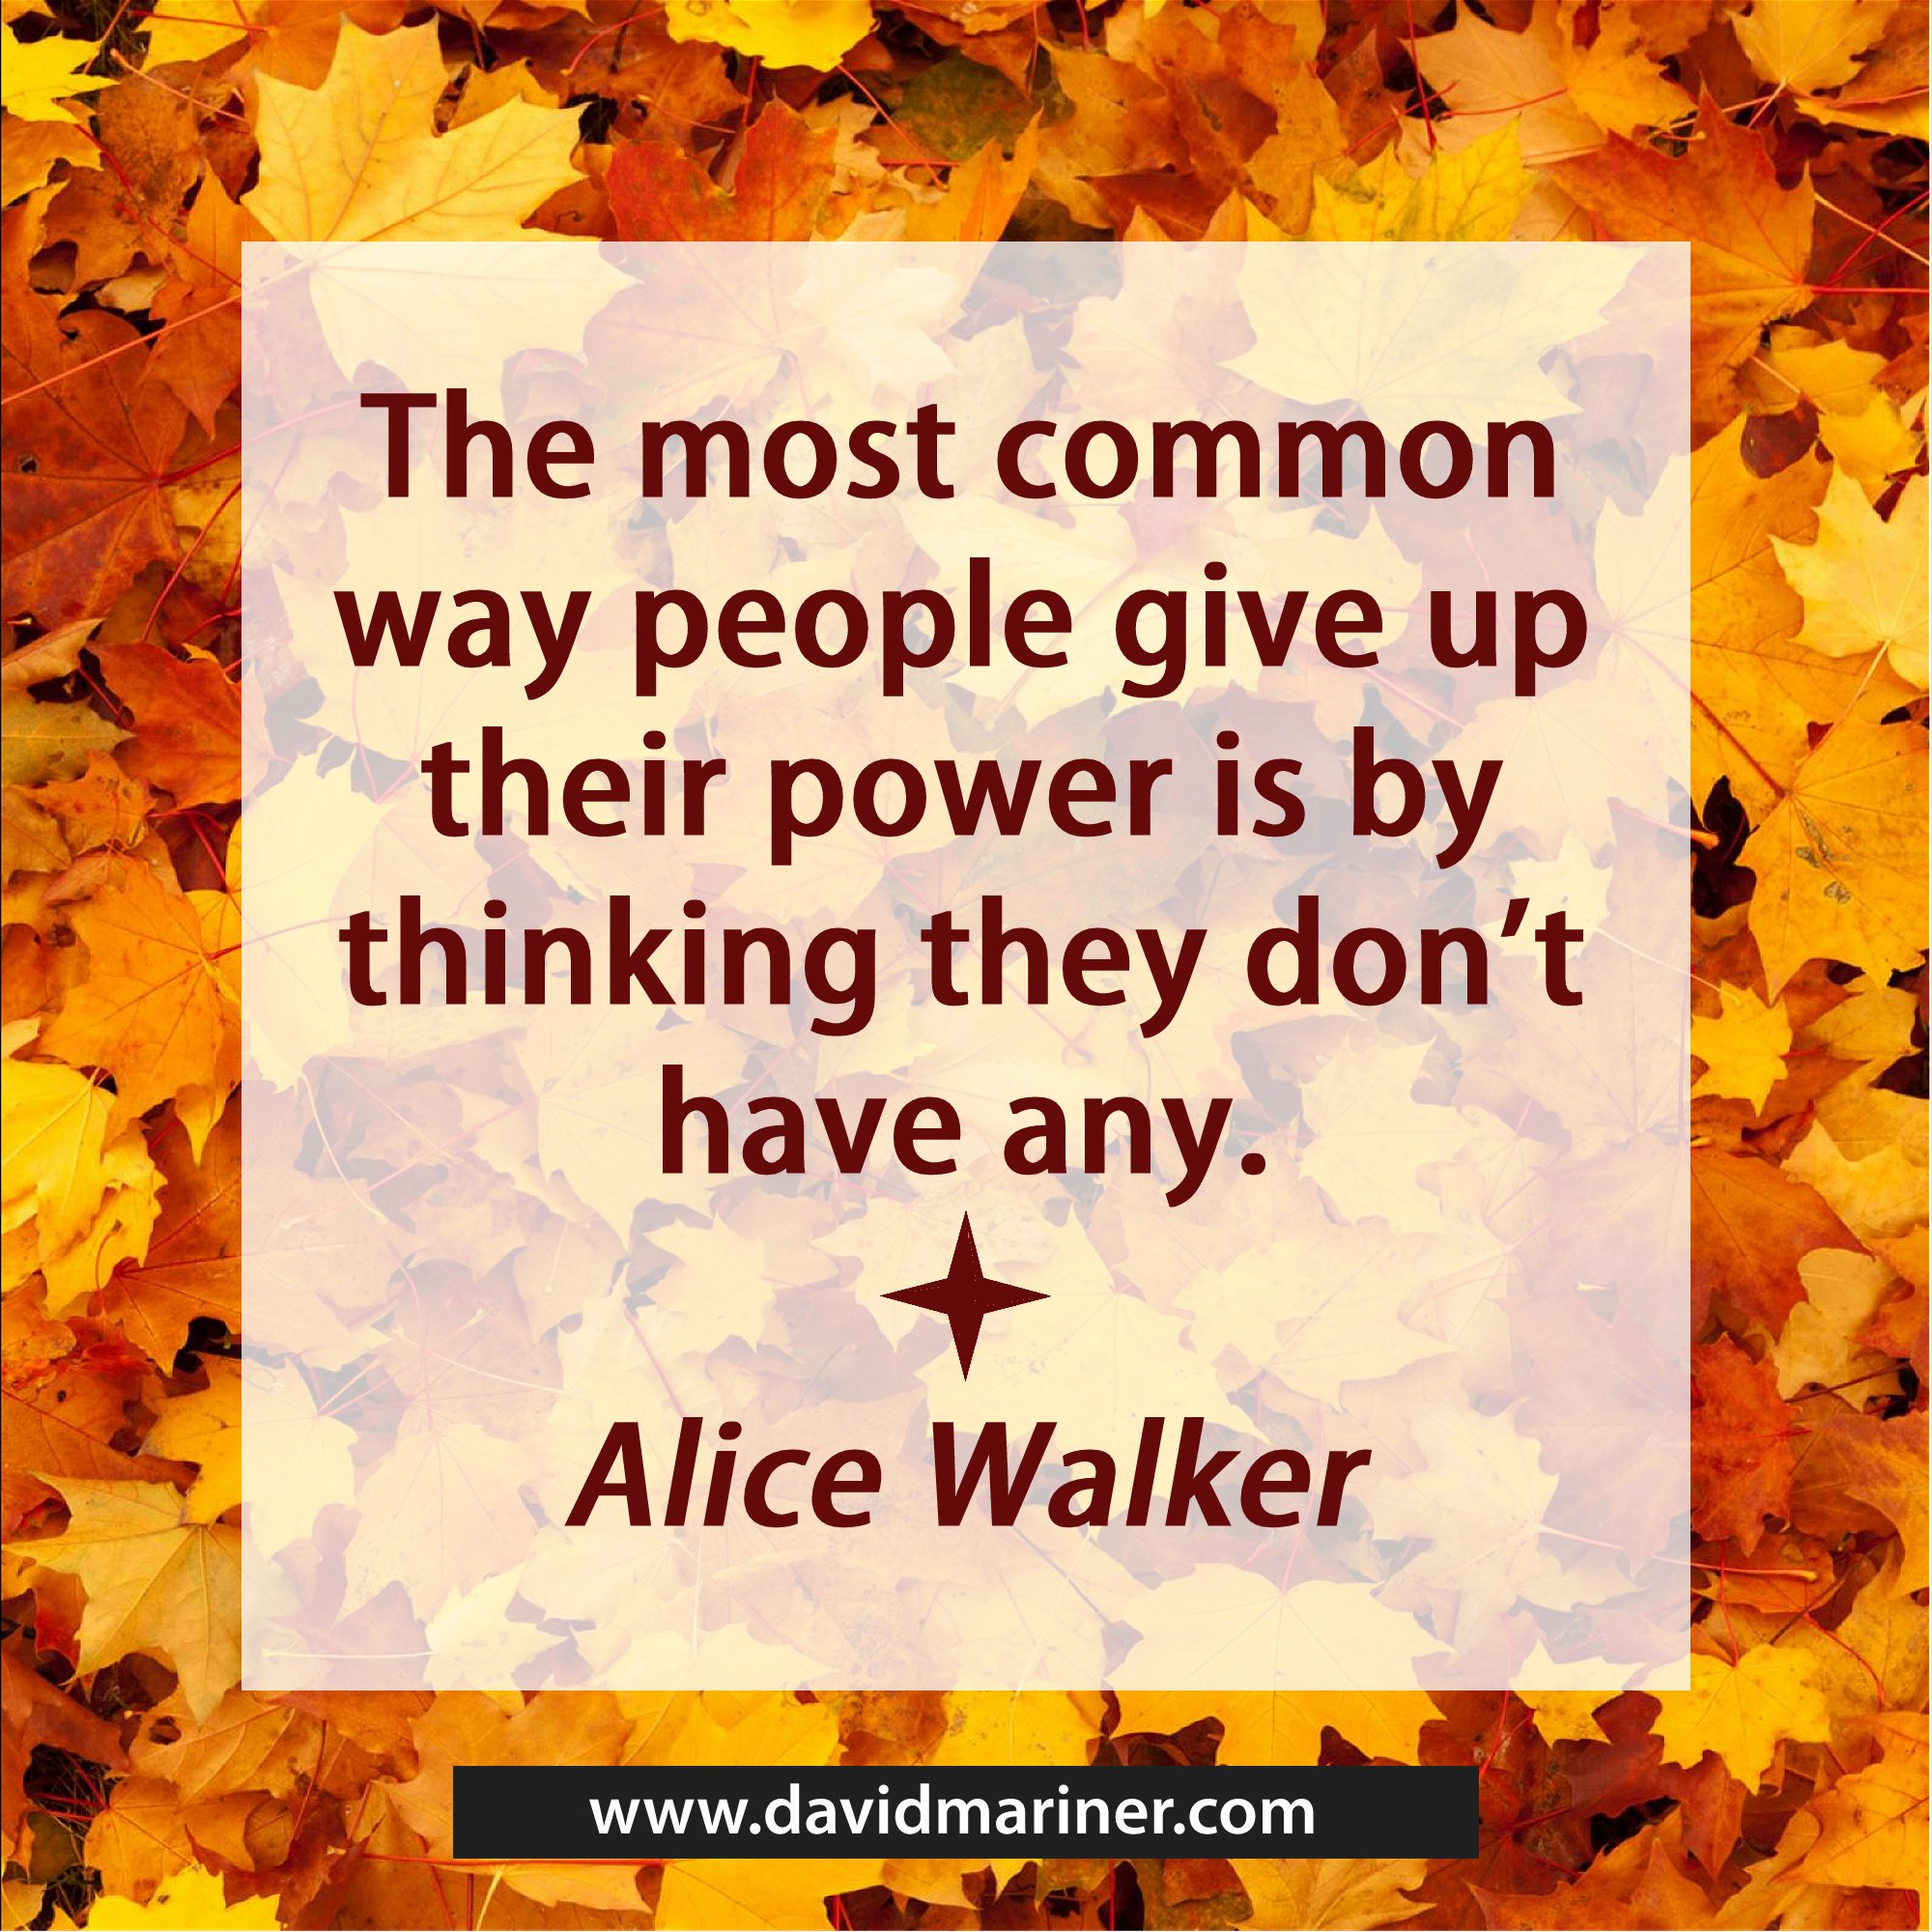 The most common way people give up their power is by thinking they don't have any. -Alice Walker